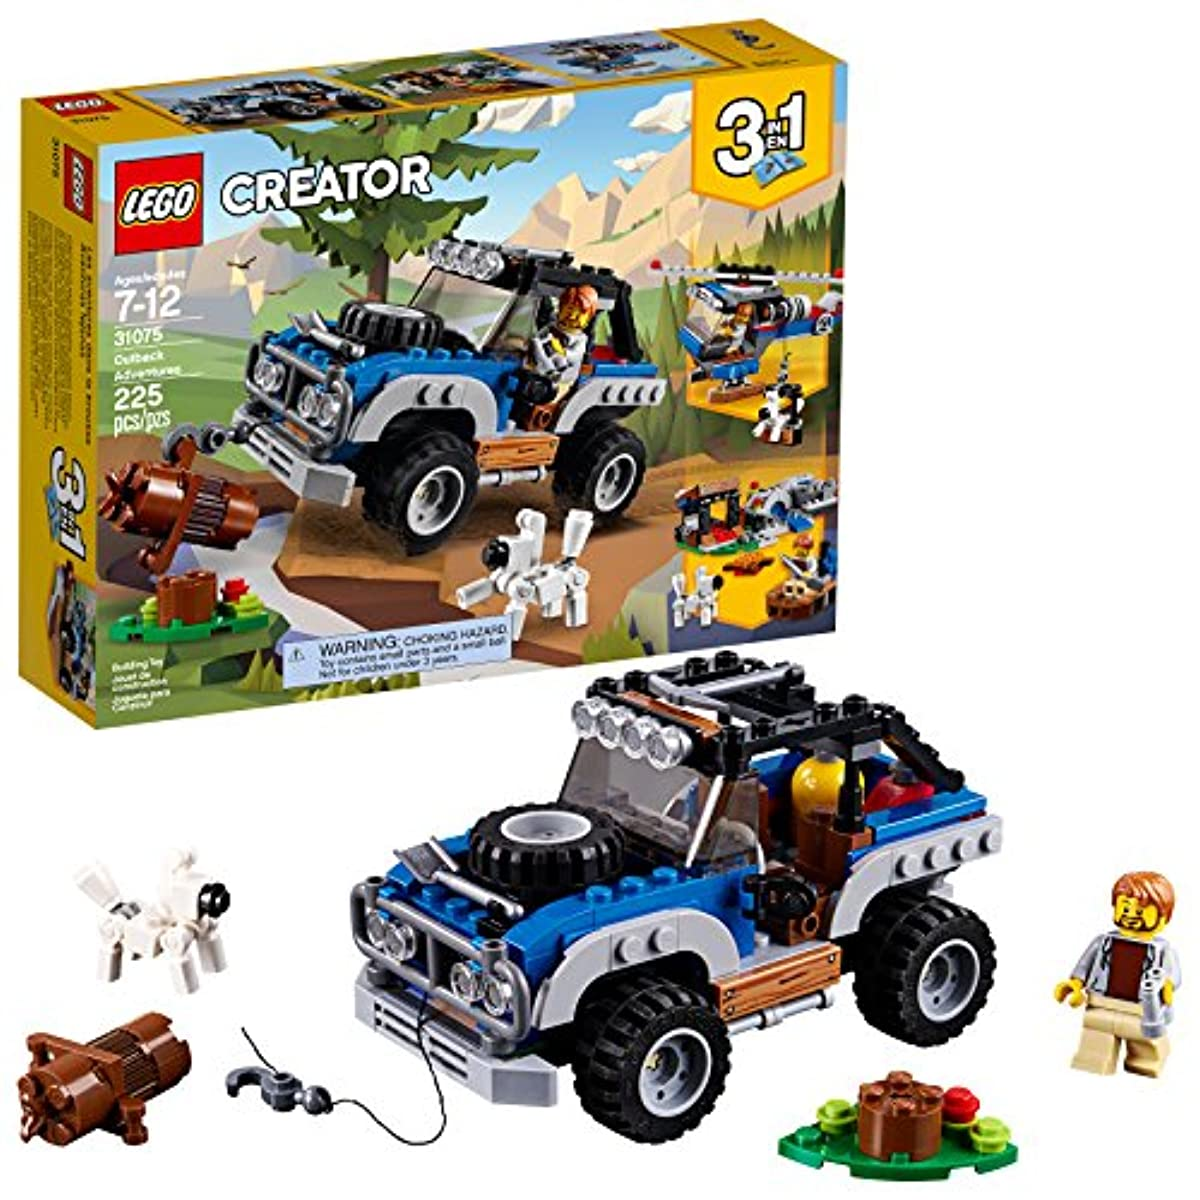 [레고 크리에이터] LEGO Creator 3in1 Outback Adventures 31075 Building Kit (225 Piece)